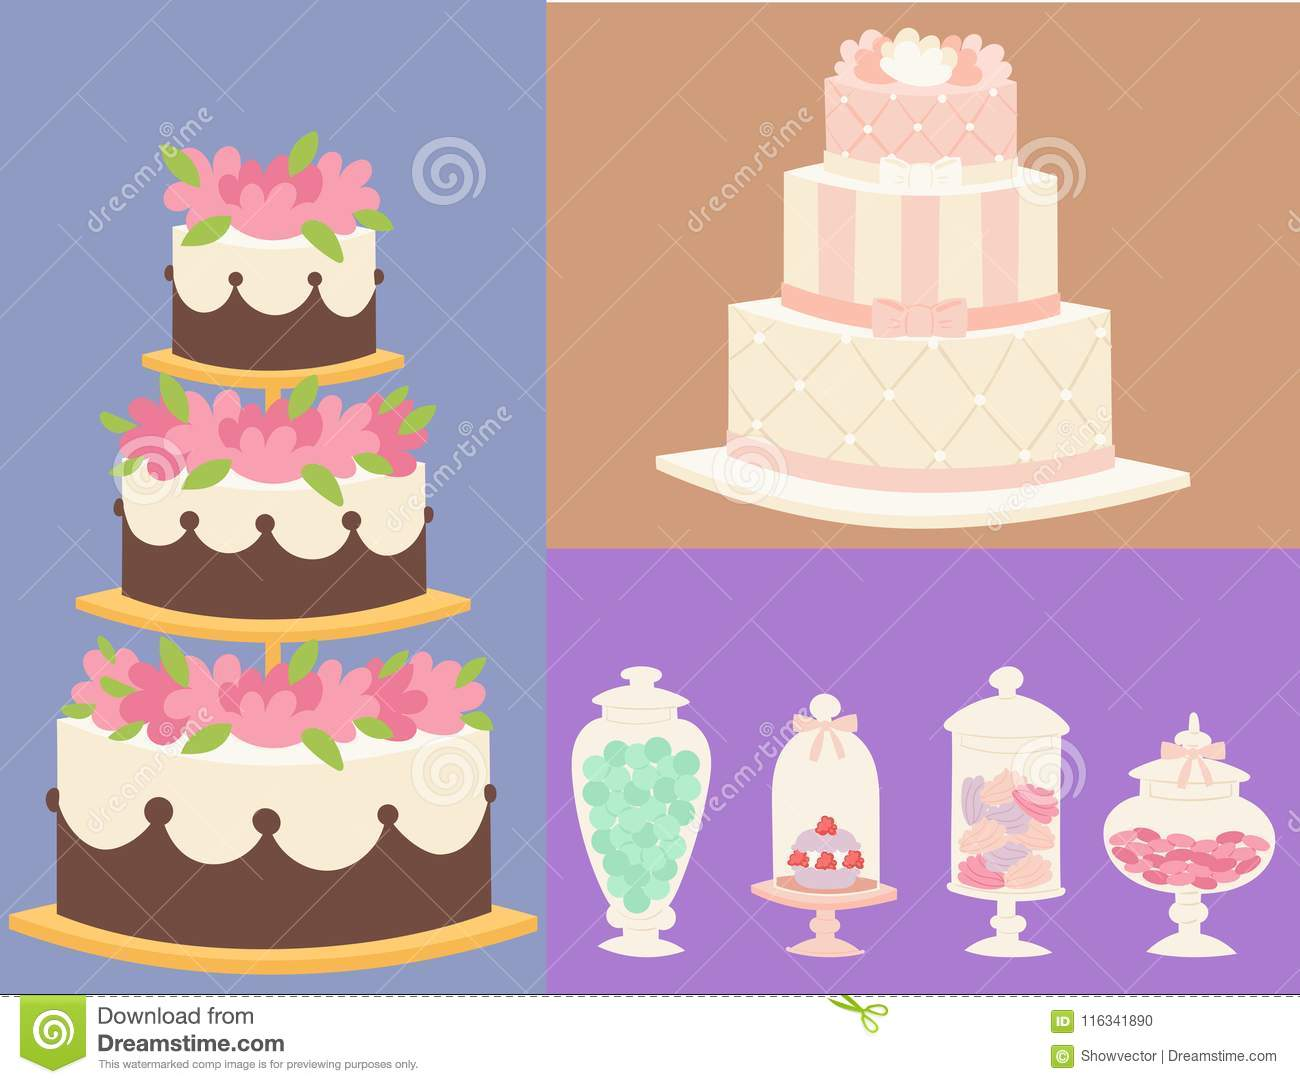 Wedding cakes fresh tasty dessert sweet pastry pie card gourmet homemade delicious cream traditional bakery tart vector